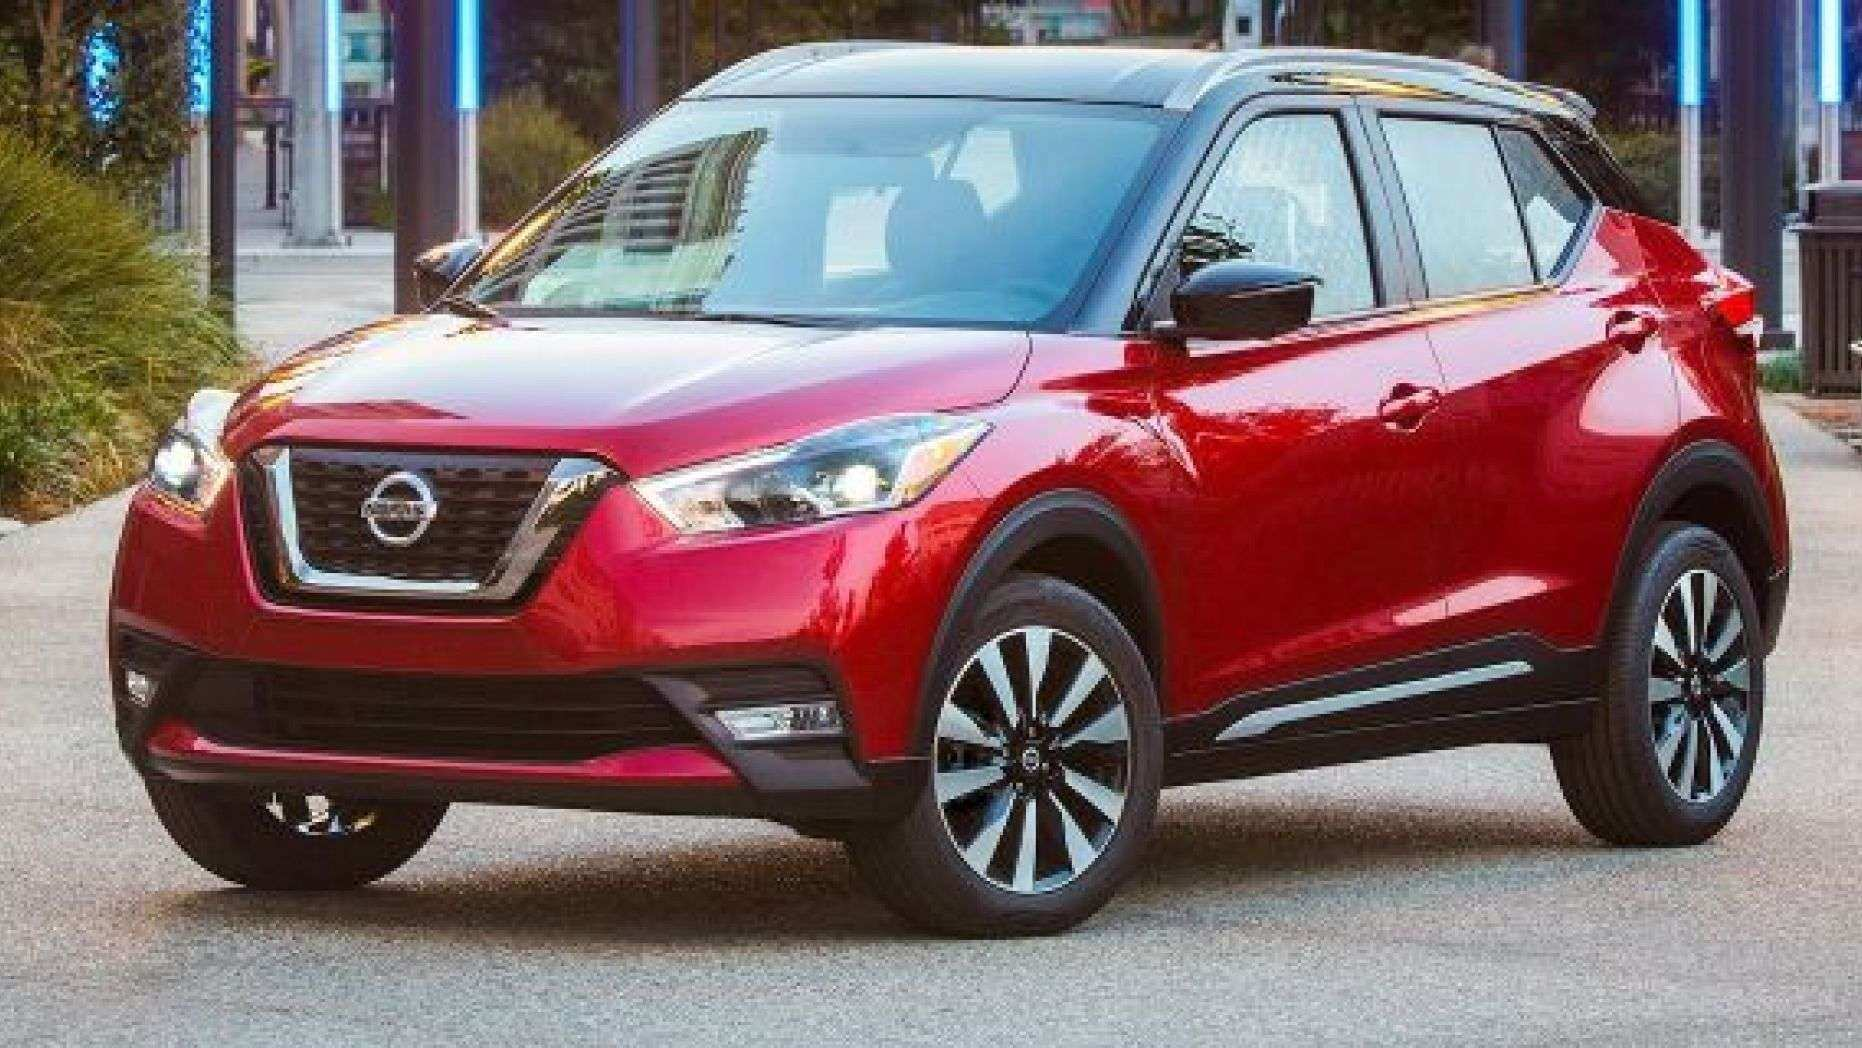 42 All New Nissan Kicks 2020 Mexico Picture